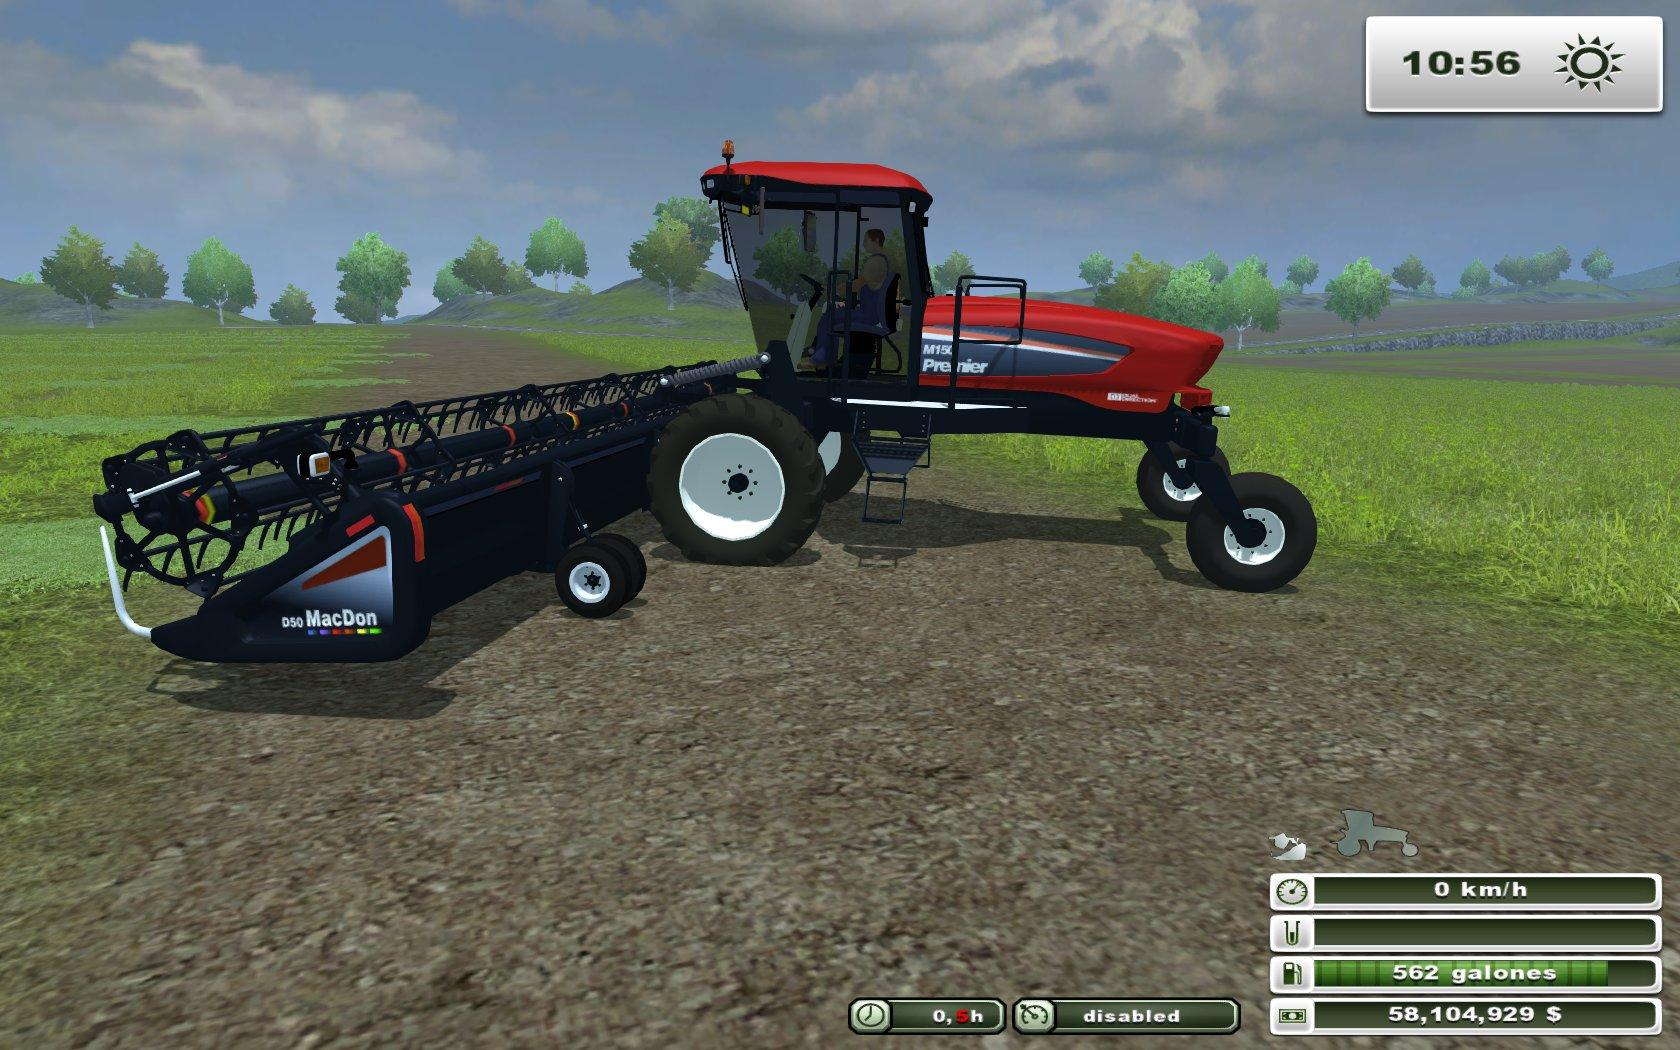 Welcome to Farming Simulator!